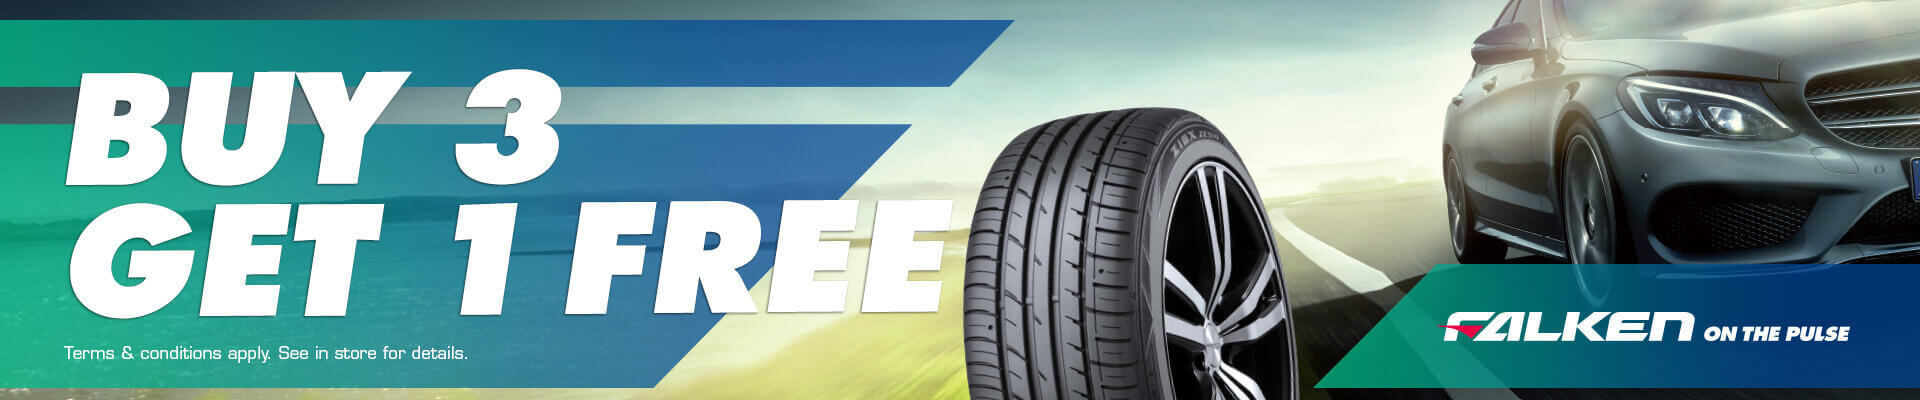 Falken Buy 3 Get 1 Free at Tyre Zone Capalaba